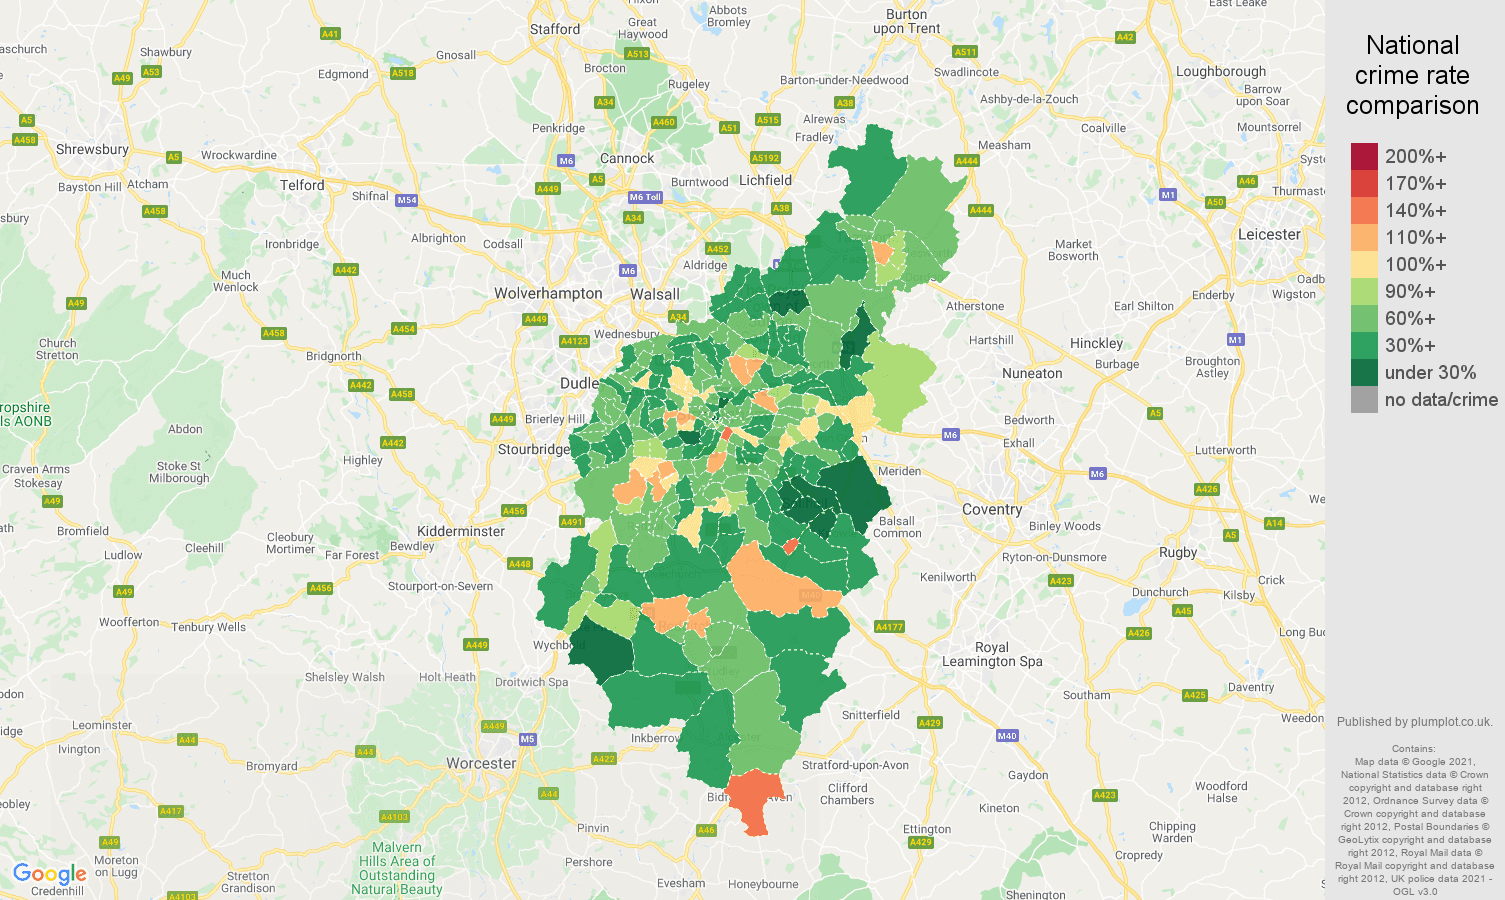 Birmingham antisocial behaviour crime rate comparison map